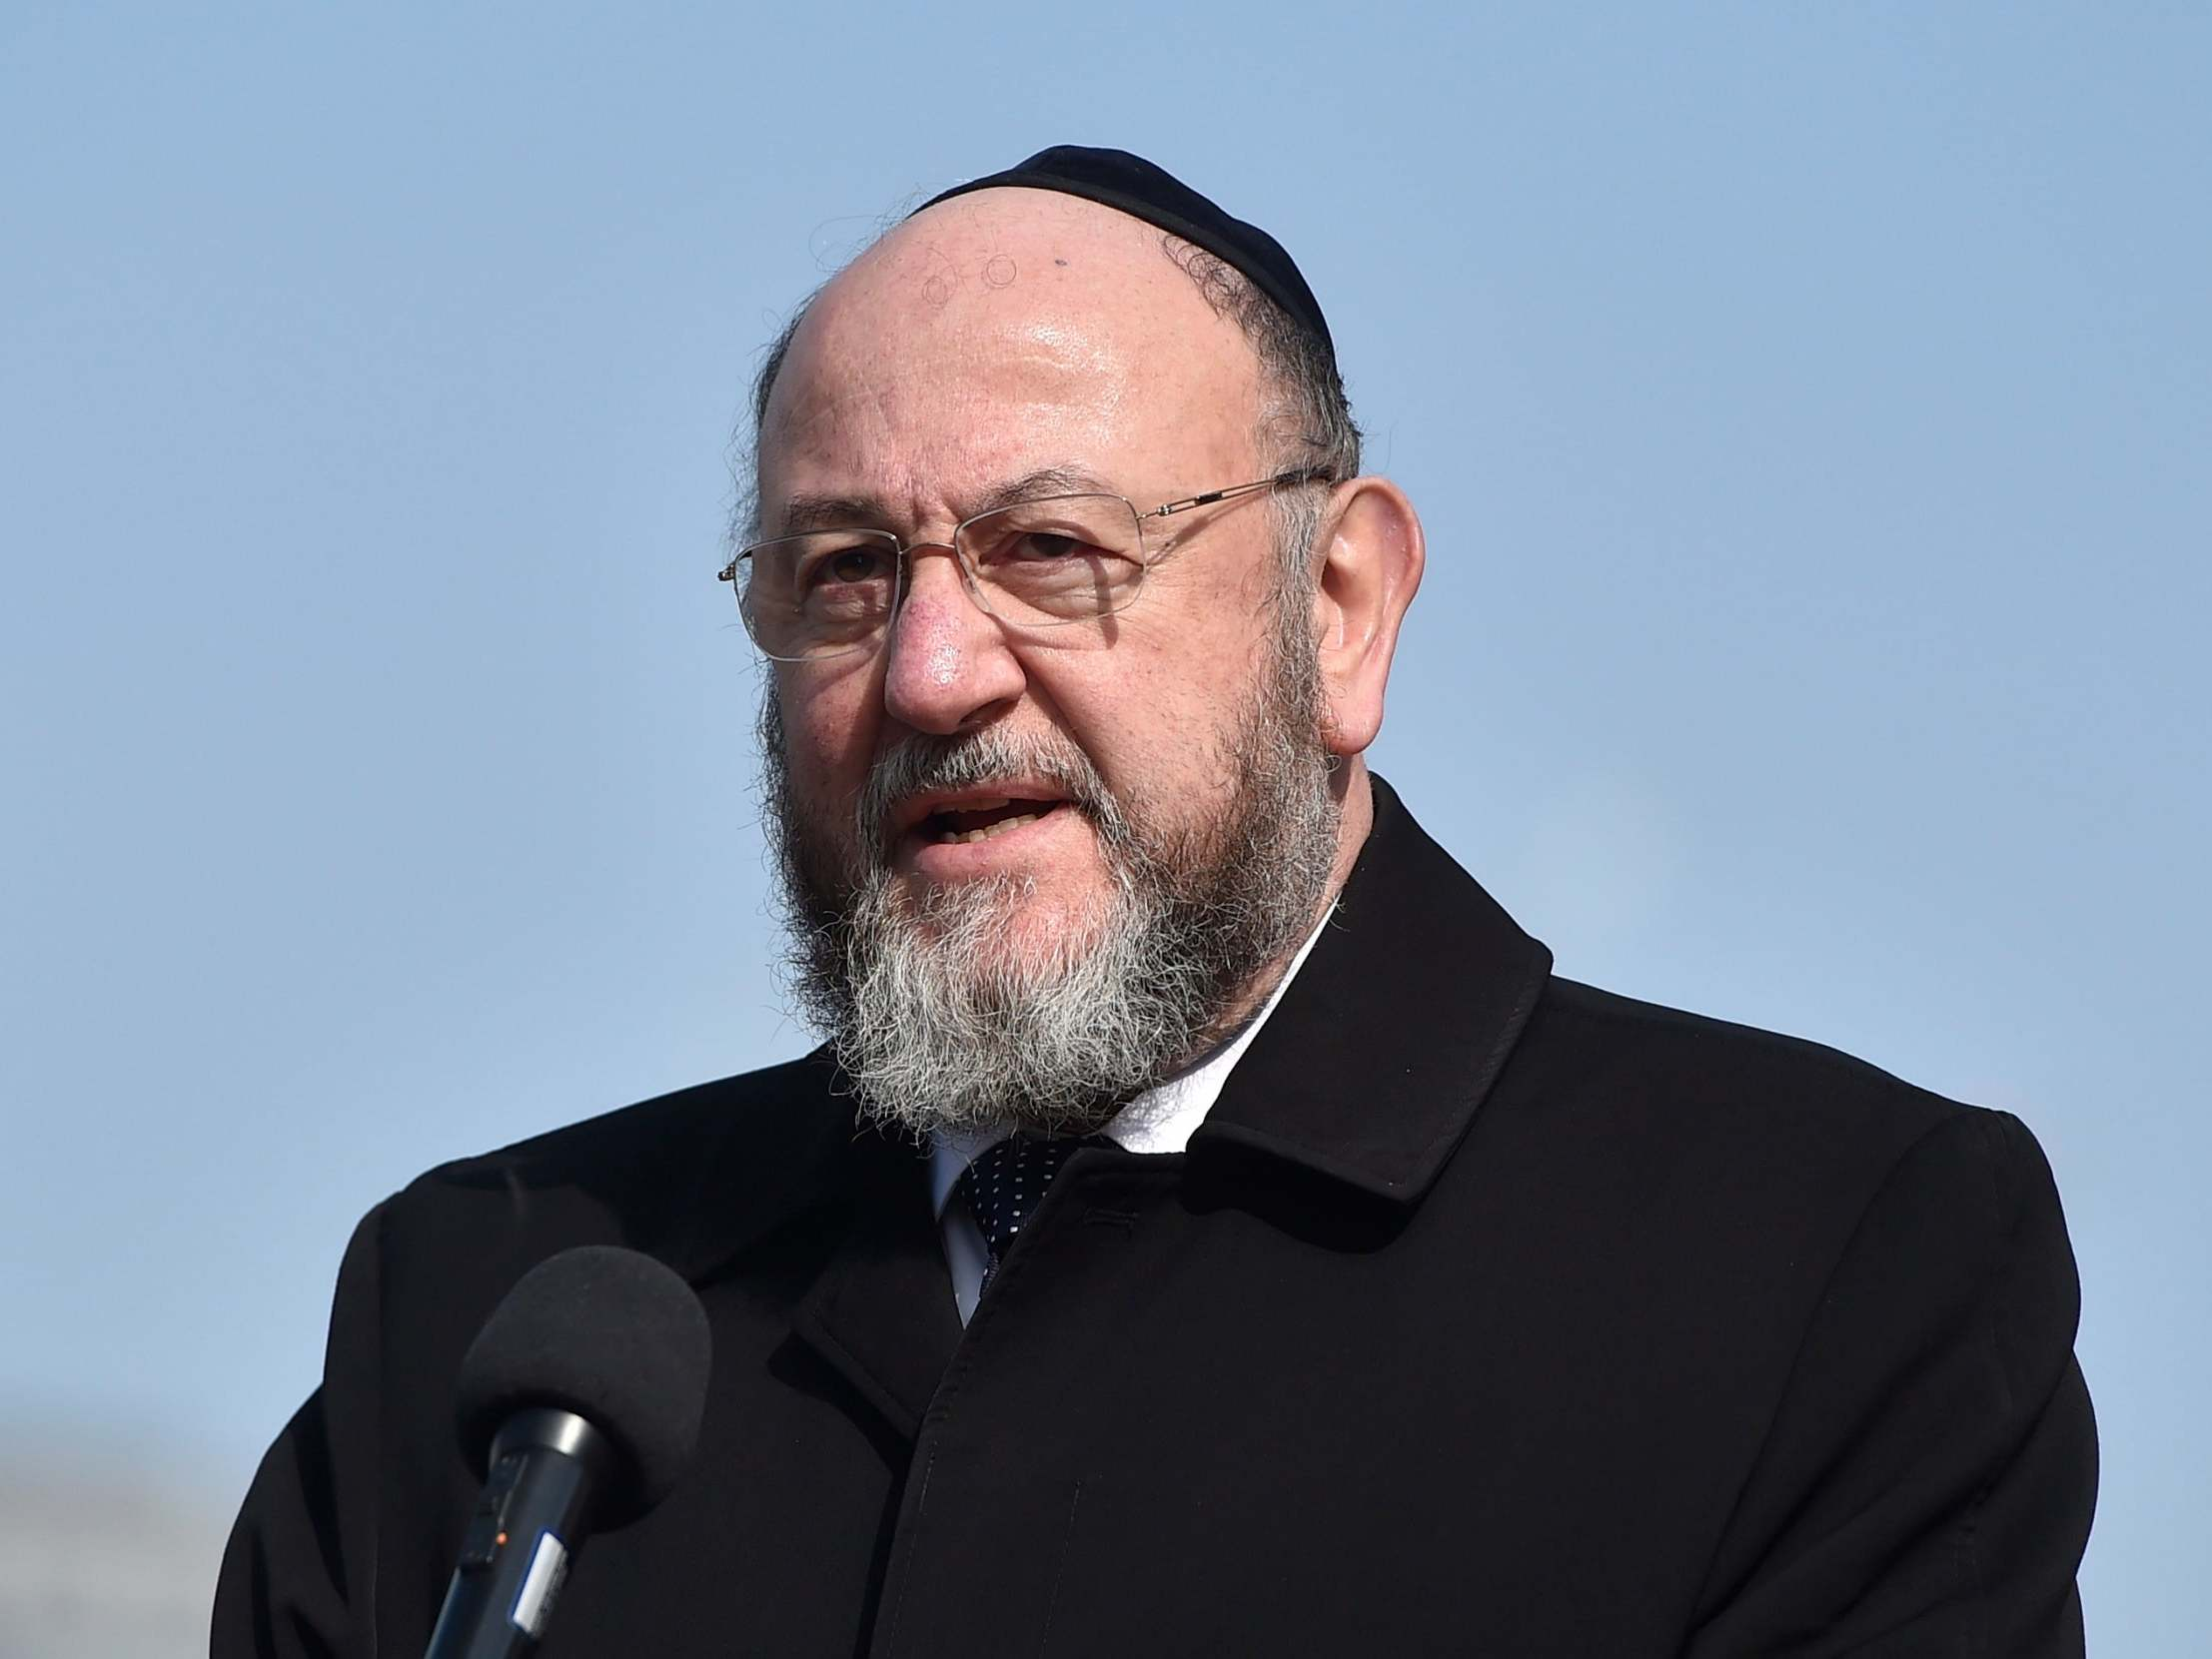 The Chief Rabbi is right to call out antisemitism, but Jeremy Corbyn is the lesser of two evils in this election